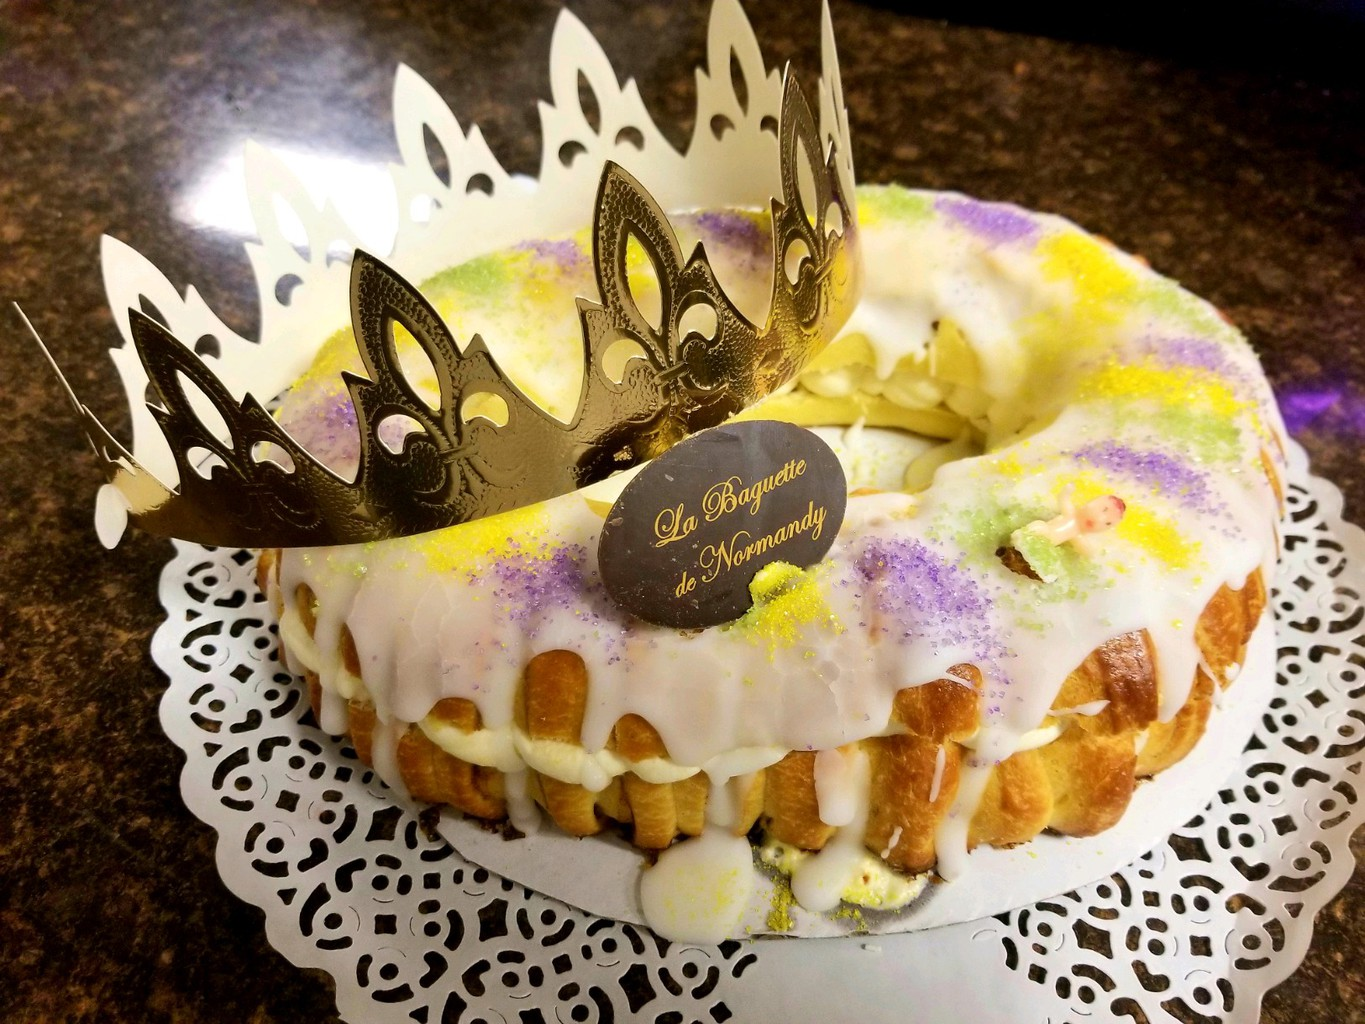 Louisiana King Cake